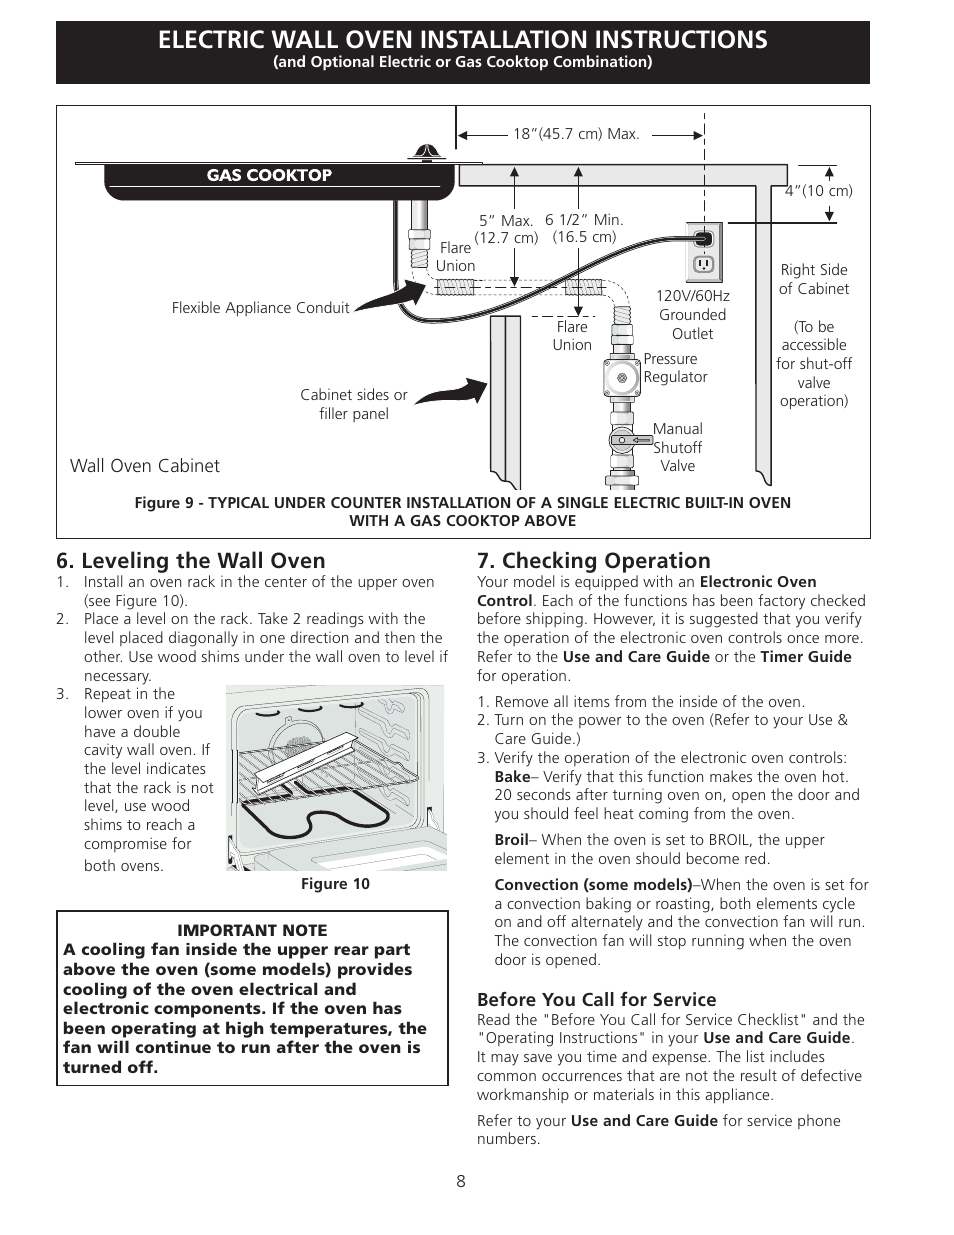 Electric Wall Oven Installation Instructions Checking Operation Built In Wiring Leveling The Frigidaire Fget3065kb User Manual Page 8 24